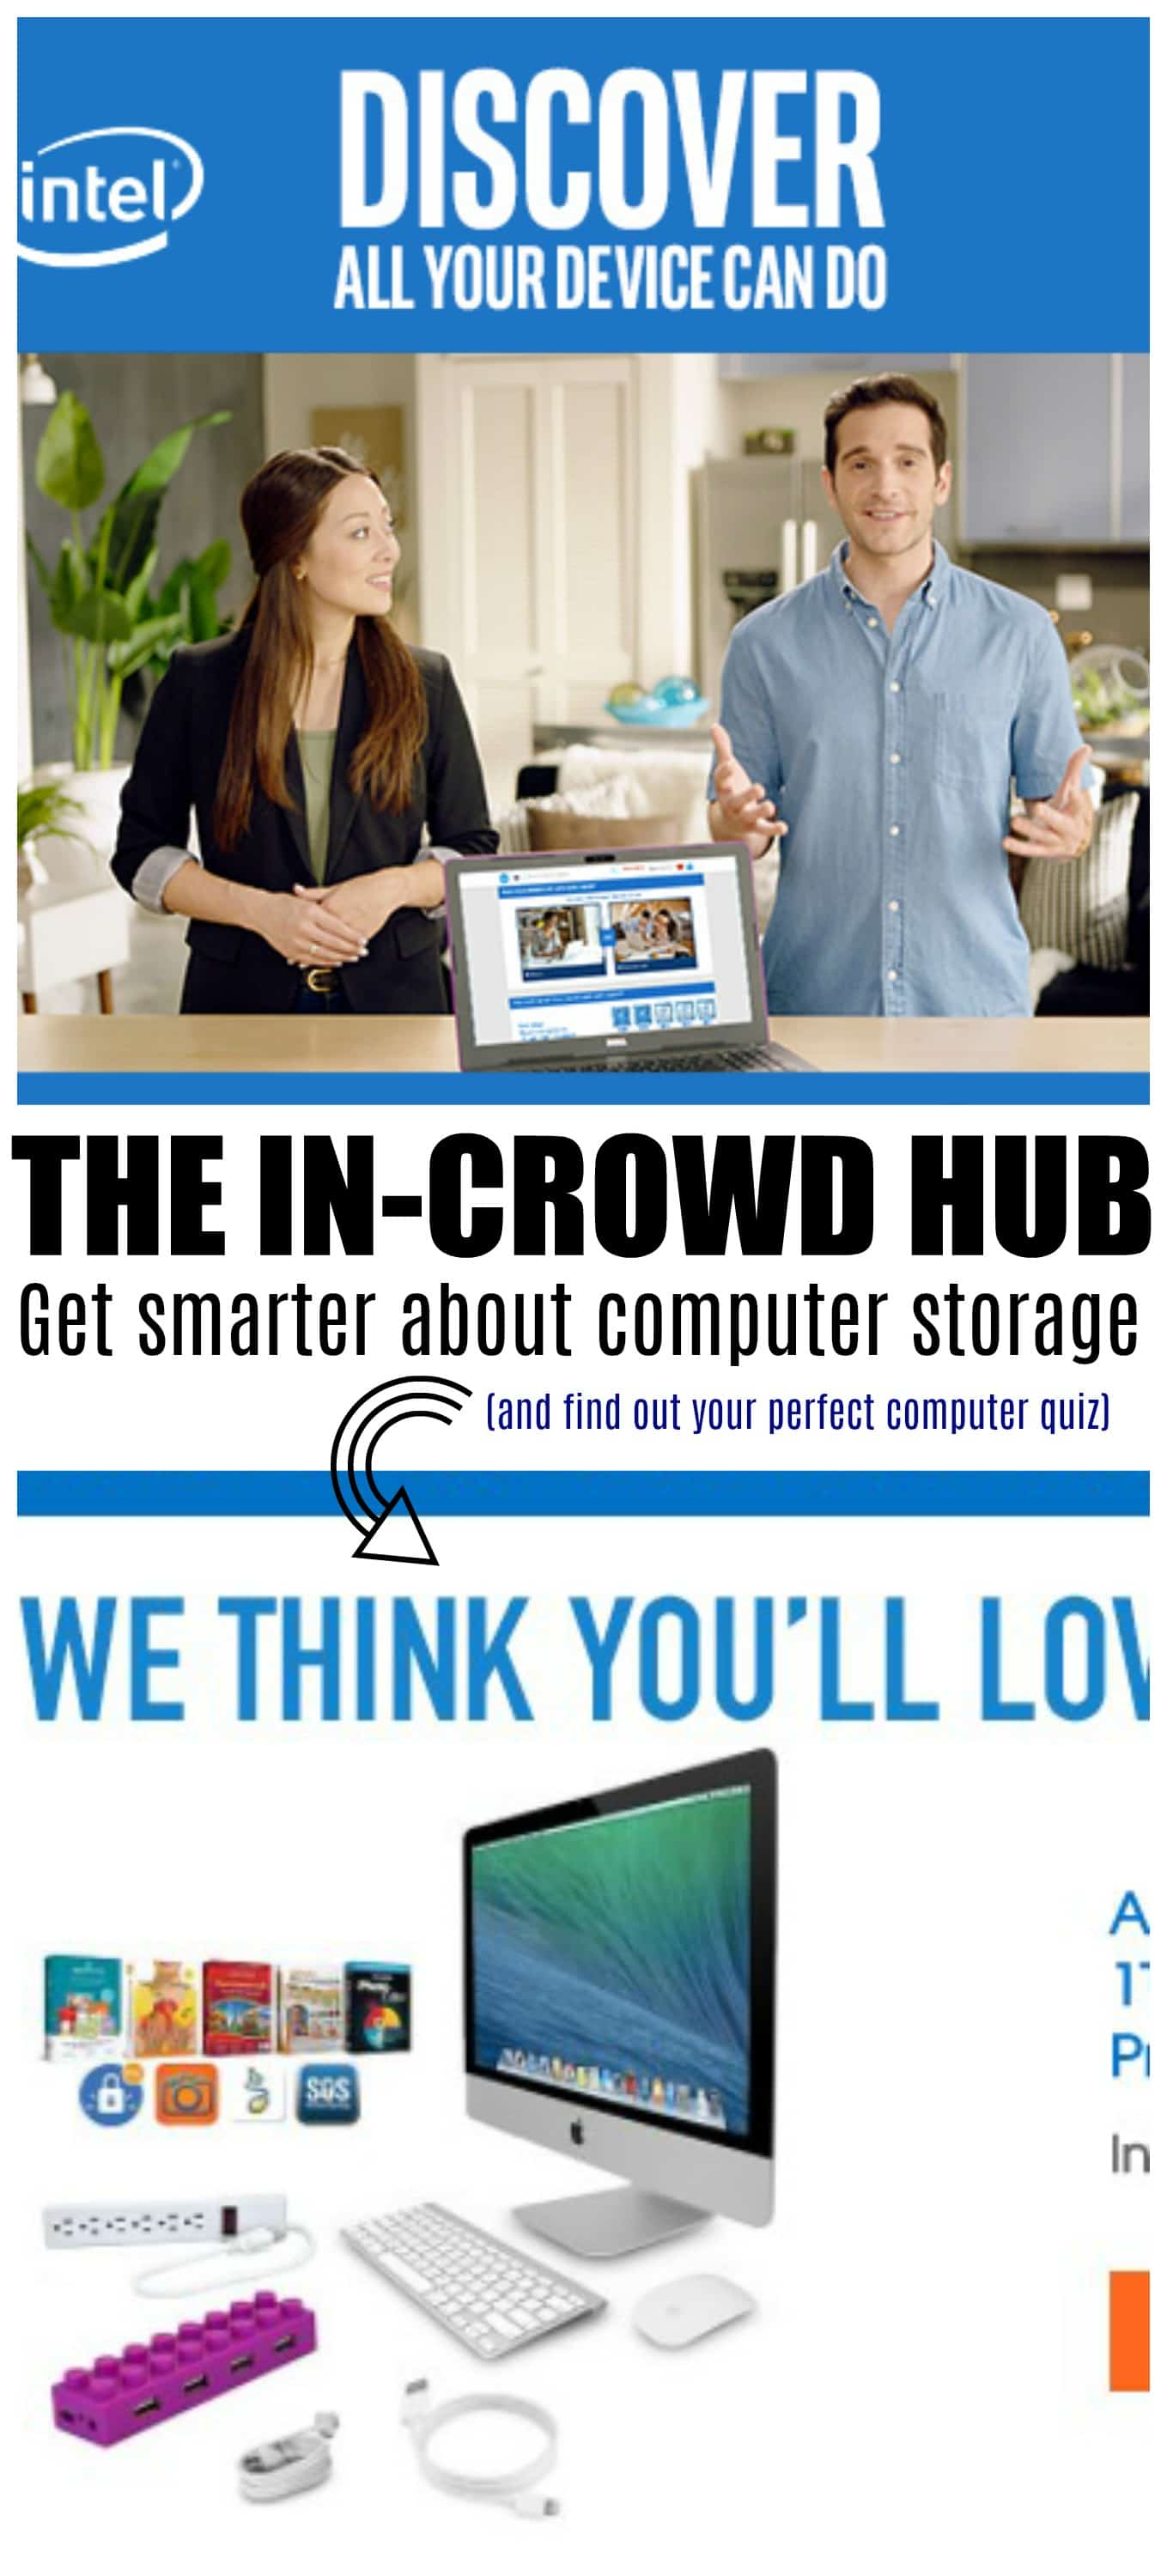 Buying a computer, Who wants time back in their day? This quiz can grant your wish! #IntelINCROWD #ad